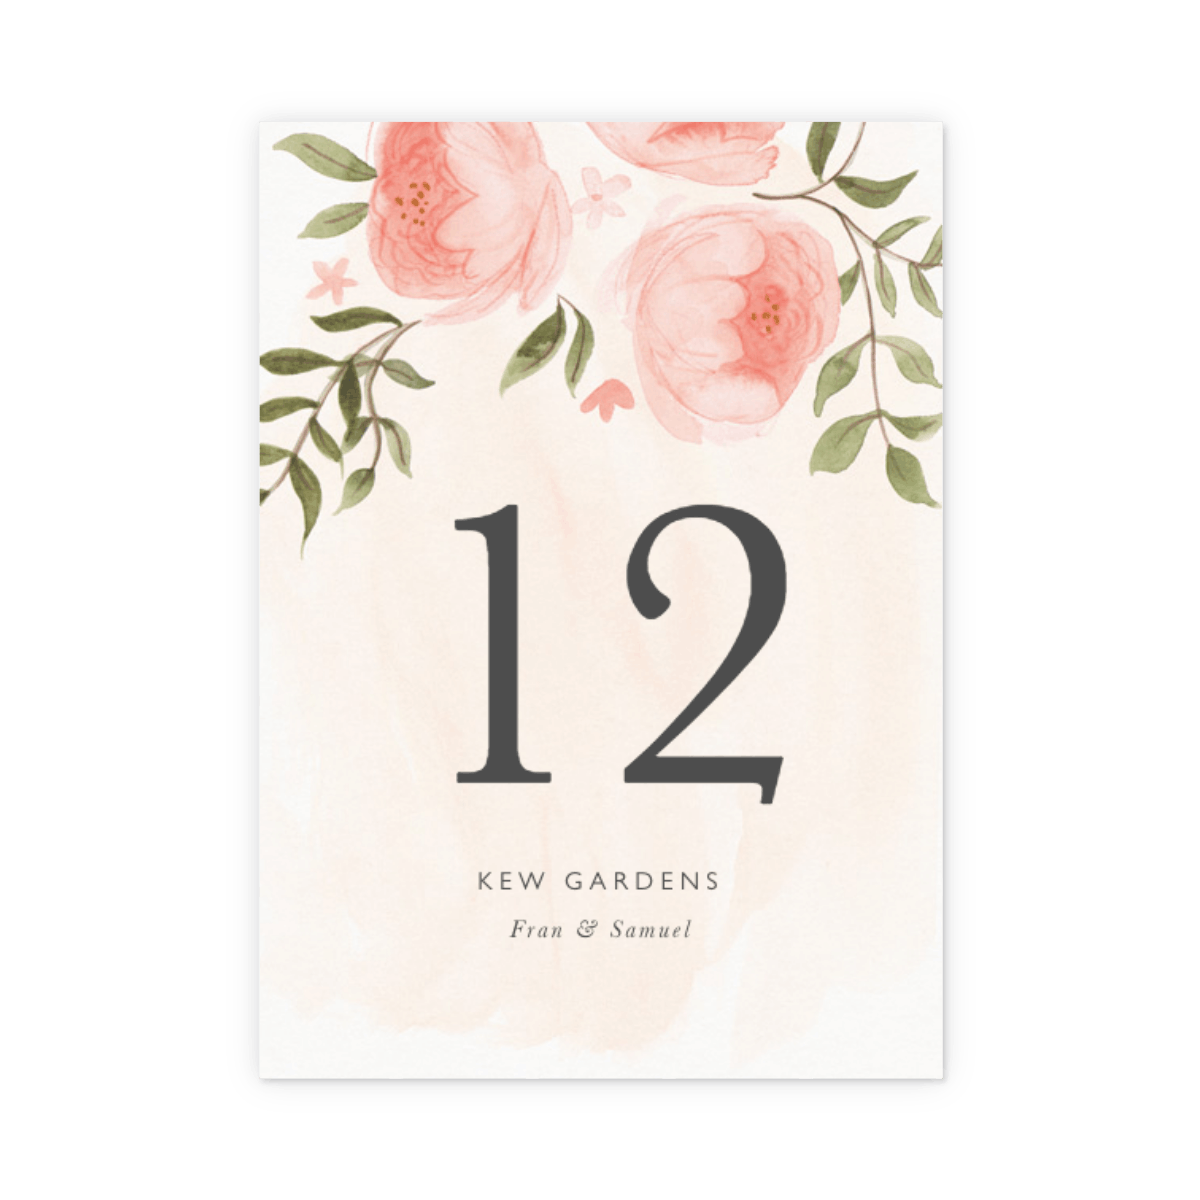 Https%3a%2f%2fwww.papier.com%2fproduct image%2f80289%2f4%2fblooming peonies 19122 avant arriere 1564651806.png?ixlib=rb 1.1